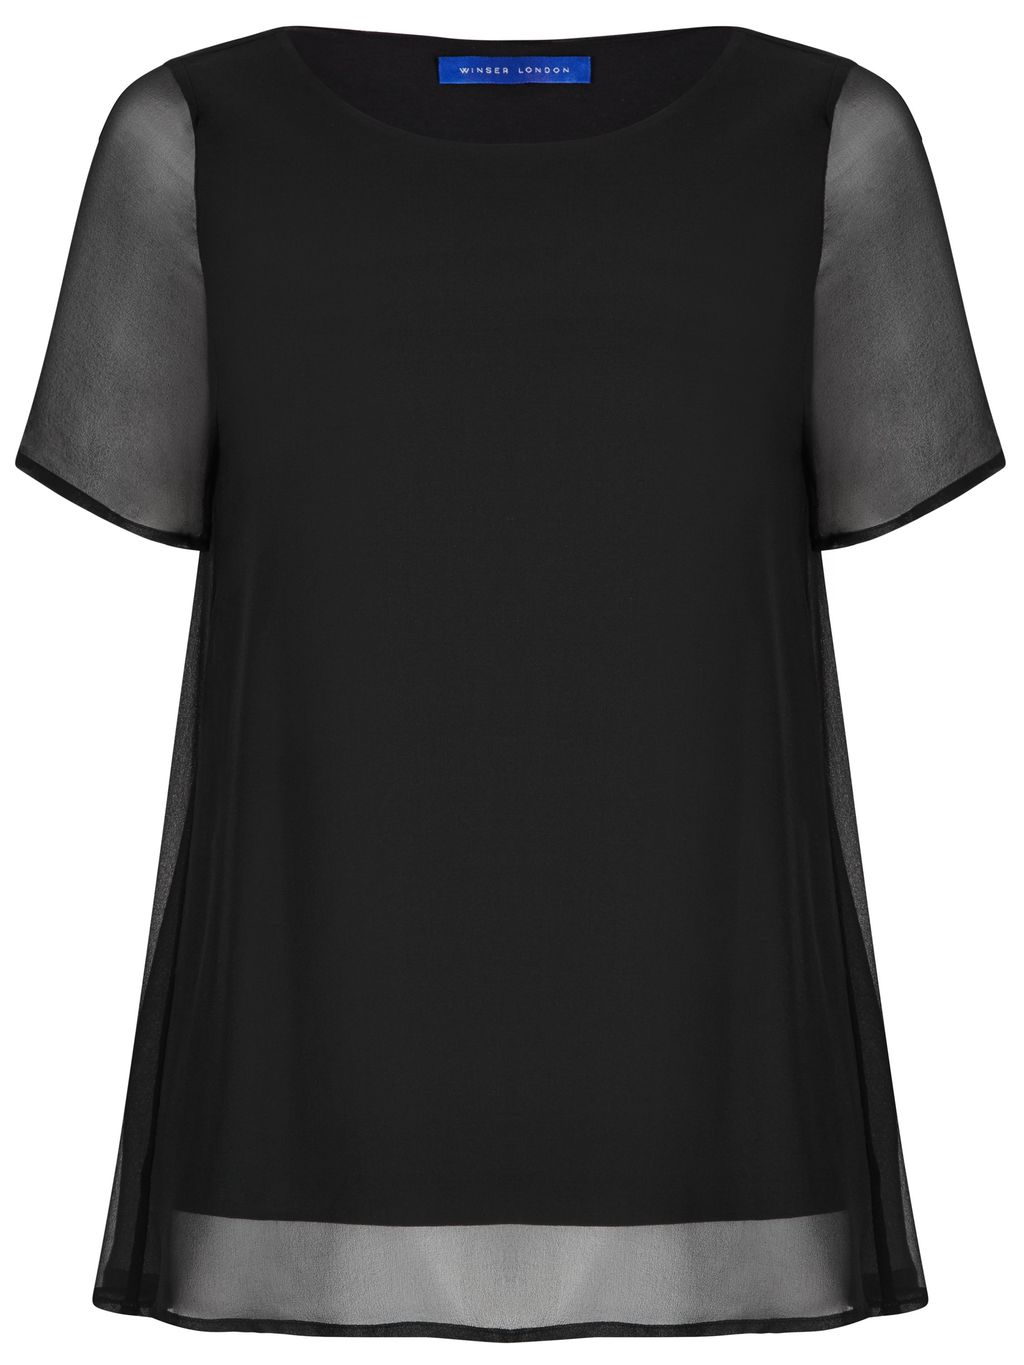 Silk Chiffon A Line Top, Black - pattern: plain; predominant colour: black; occasions: evening; length: standard; style: top; fibres: silk - 100%; fit: body skimming; neckline: crew; sleeve length: short sleeve; sleeve style: standard; texture group: sheer fabrics/chiffon/organza etc.; pattern type: fabric; shoulder detail: sheer at shoulder; season: s/s 2016